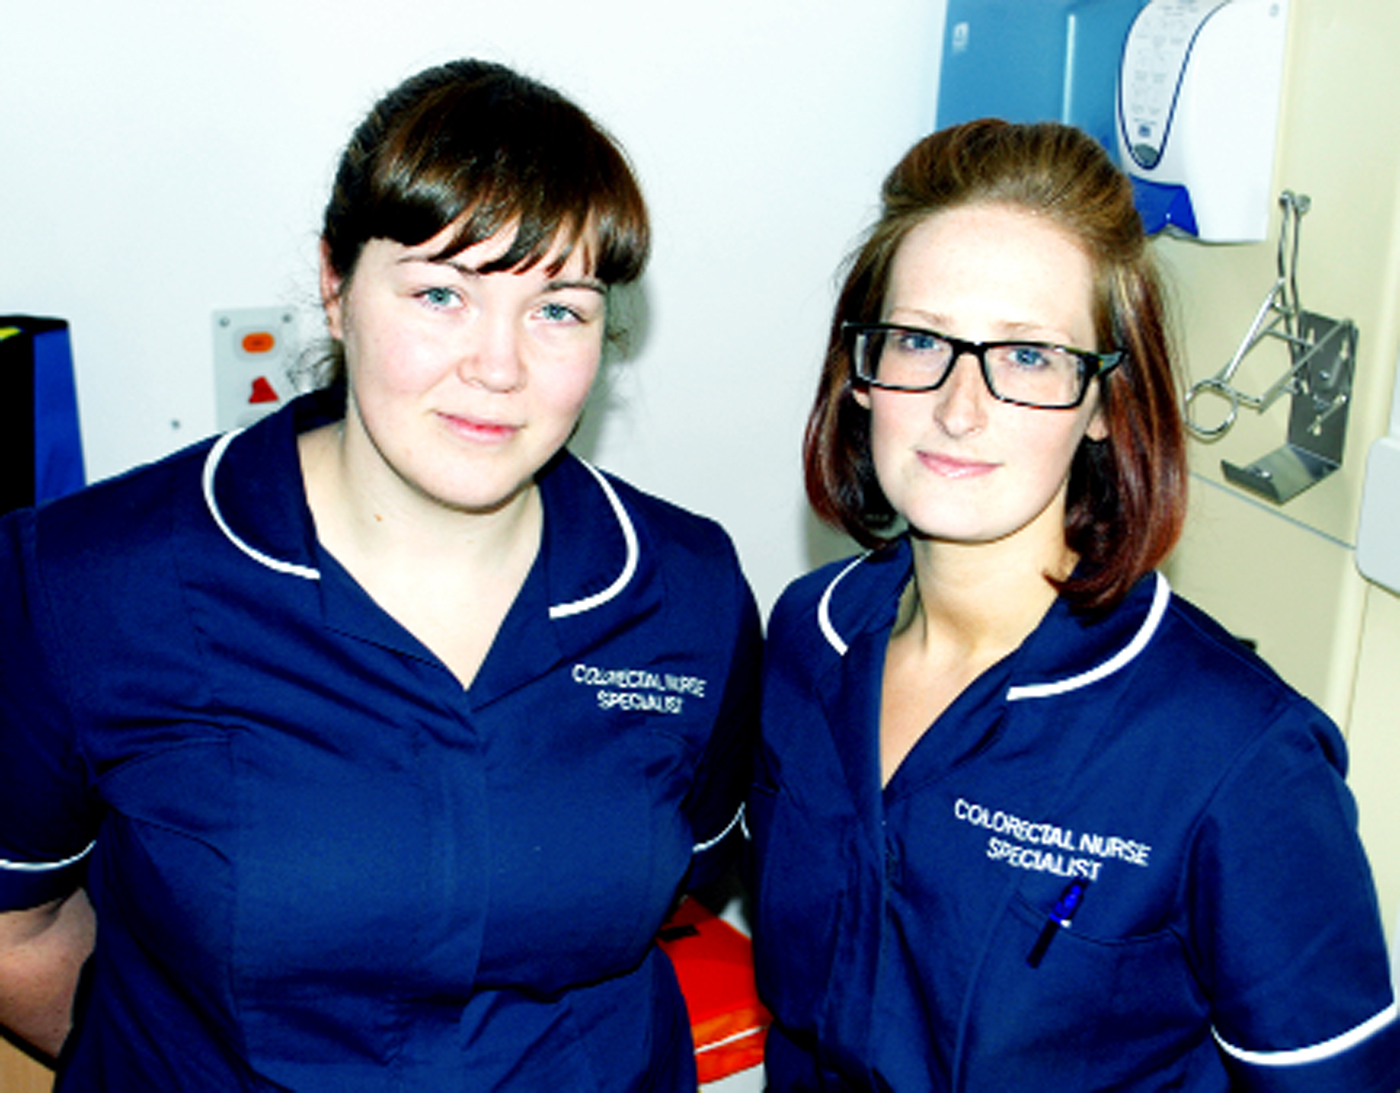 Andrea Darbyshire, left, Colorectal Nurse Specialist at the East Lancashire NHS Hospital Trust, and fellow nurse Mandy Darbyshire